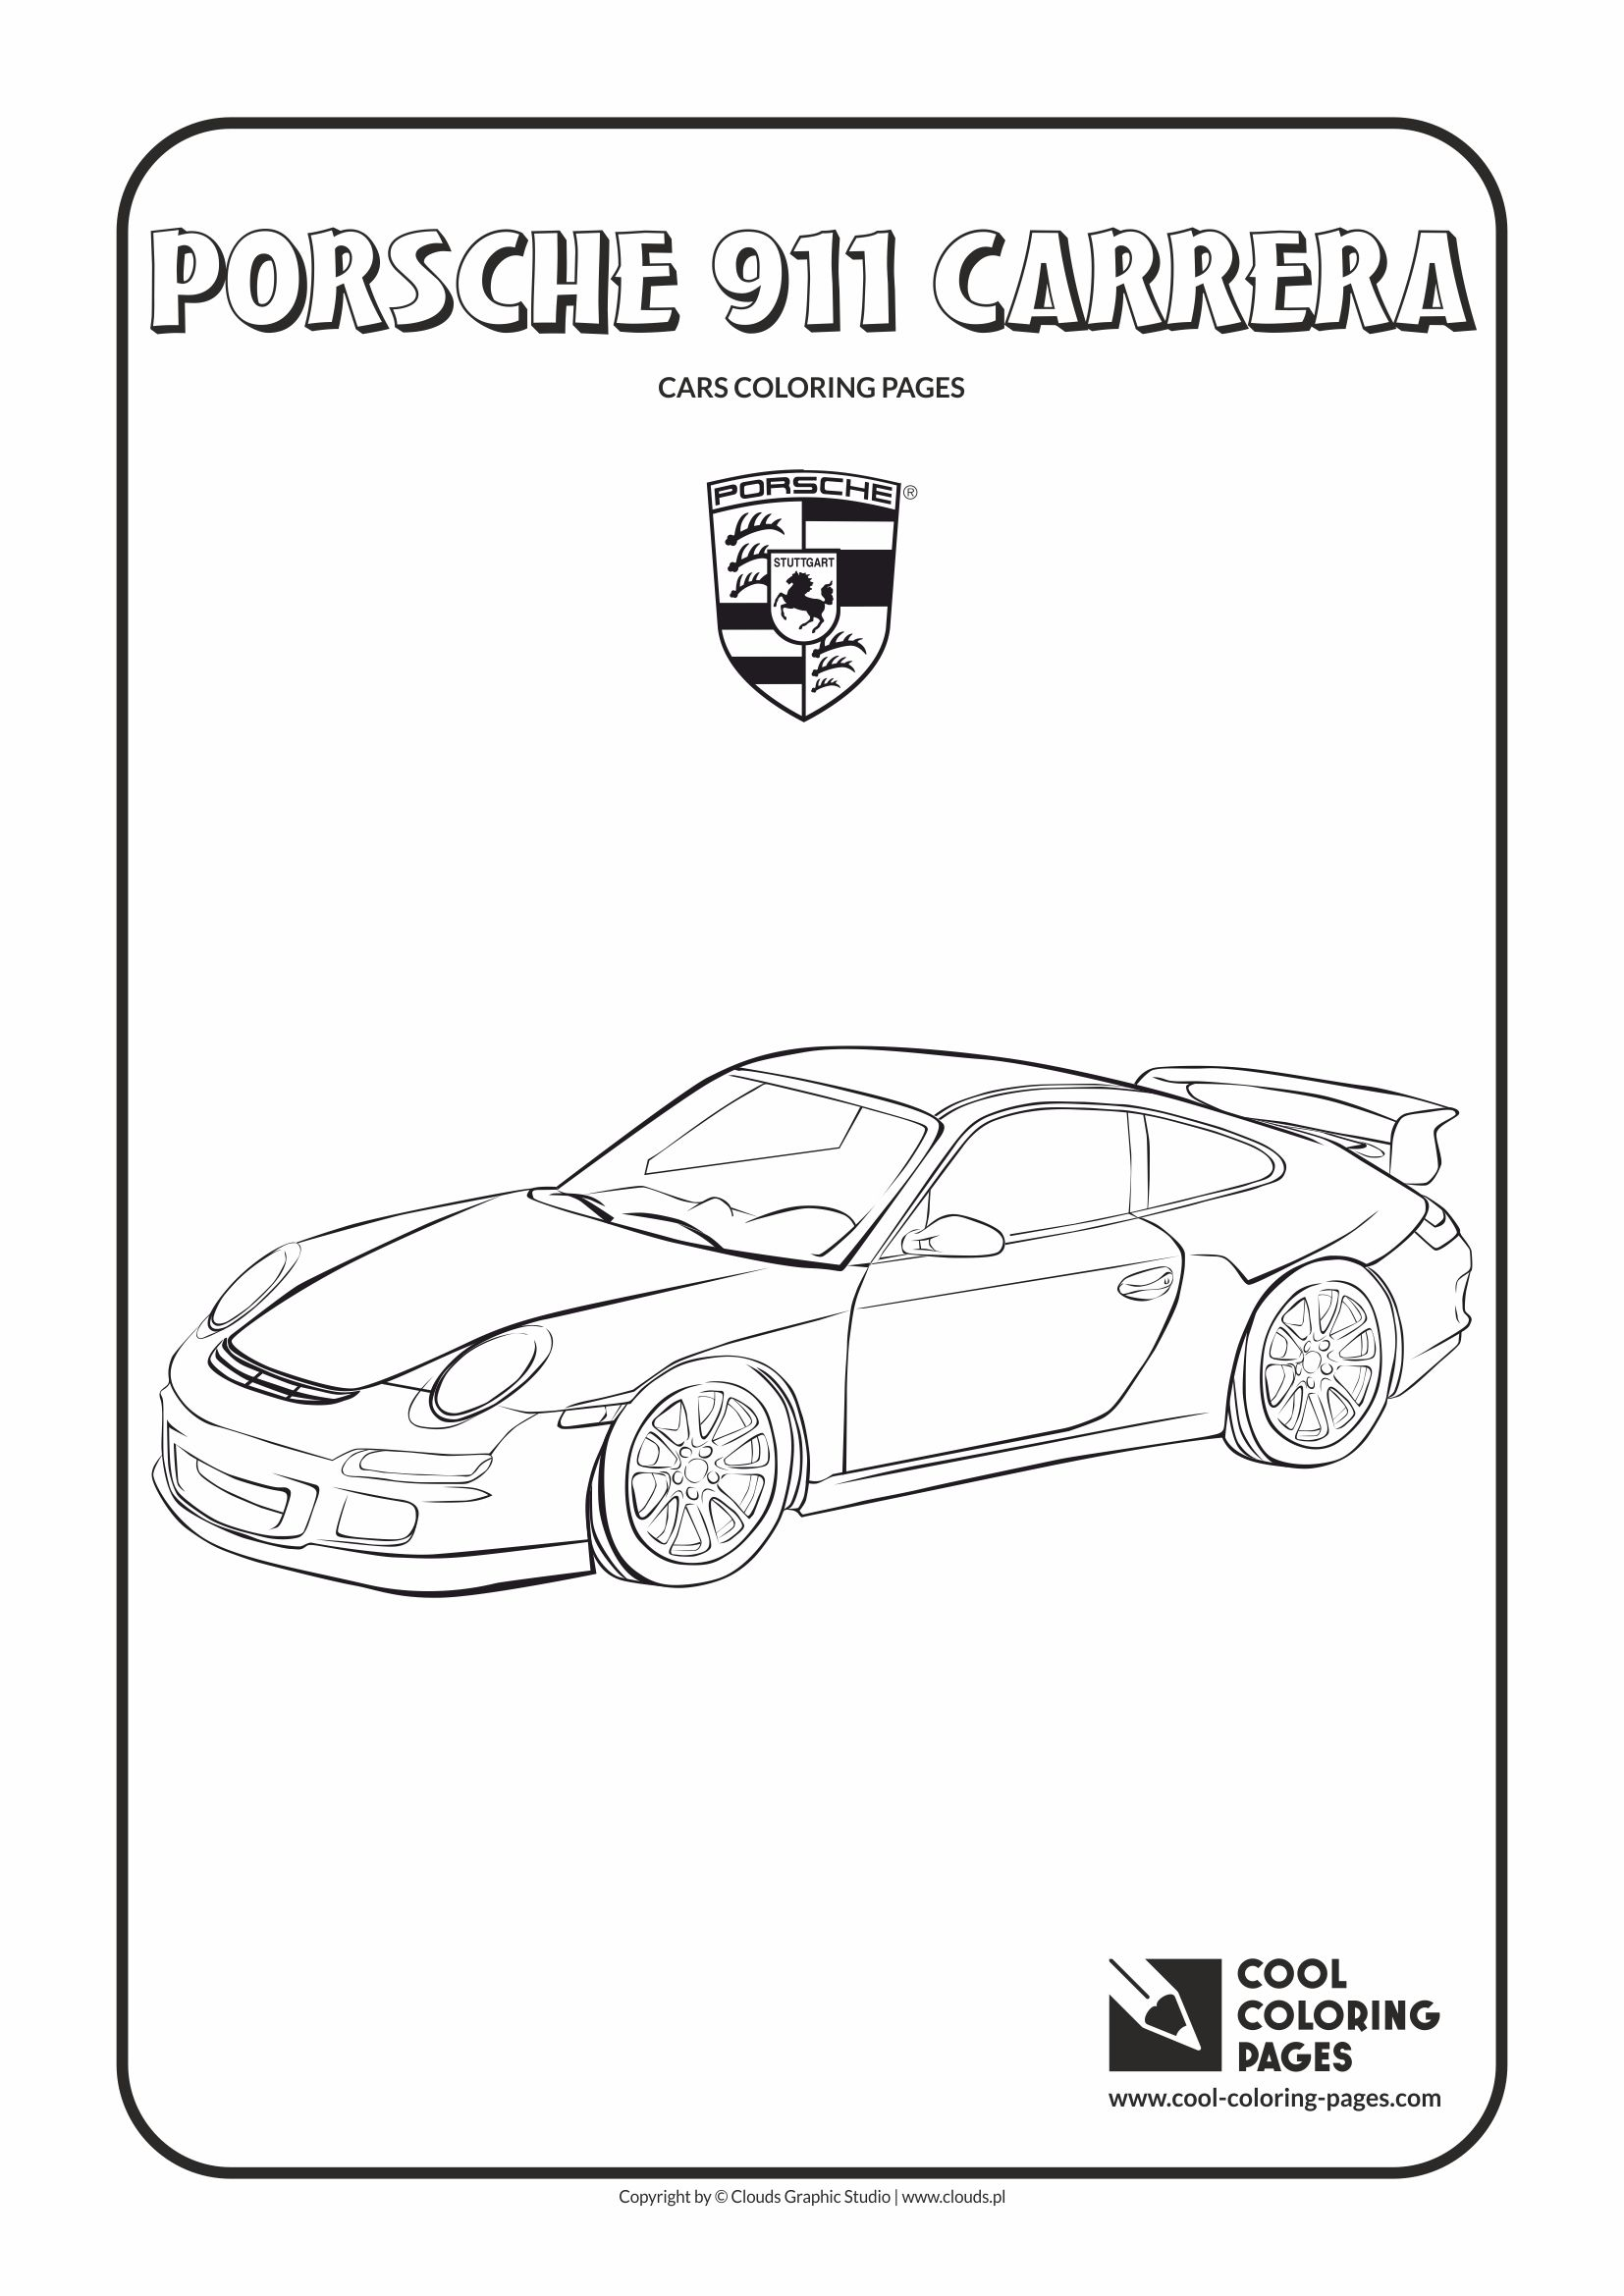 Cool Coloring Pages - Vehicles / Porsche 911 Carrera / Coloring page with Porsche 911 Carrera